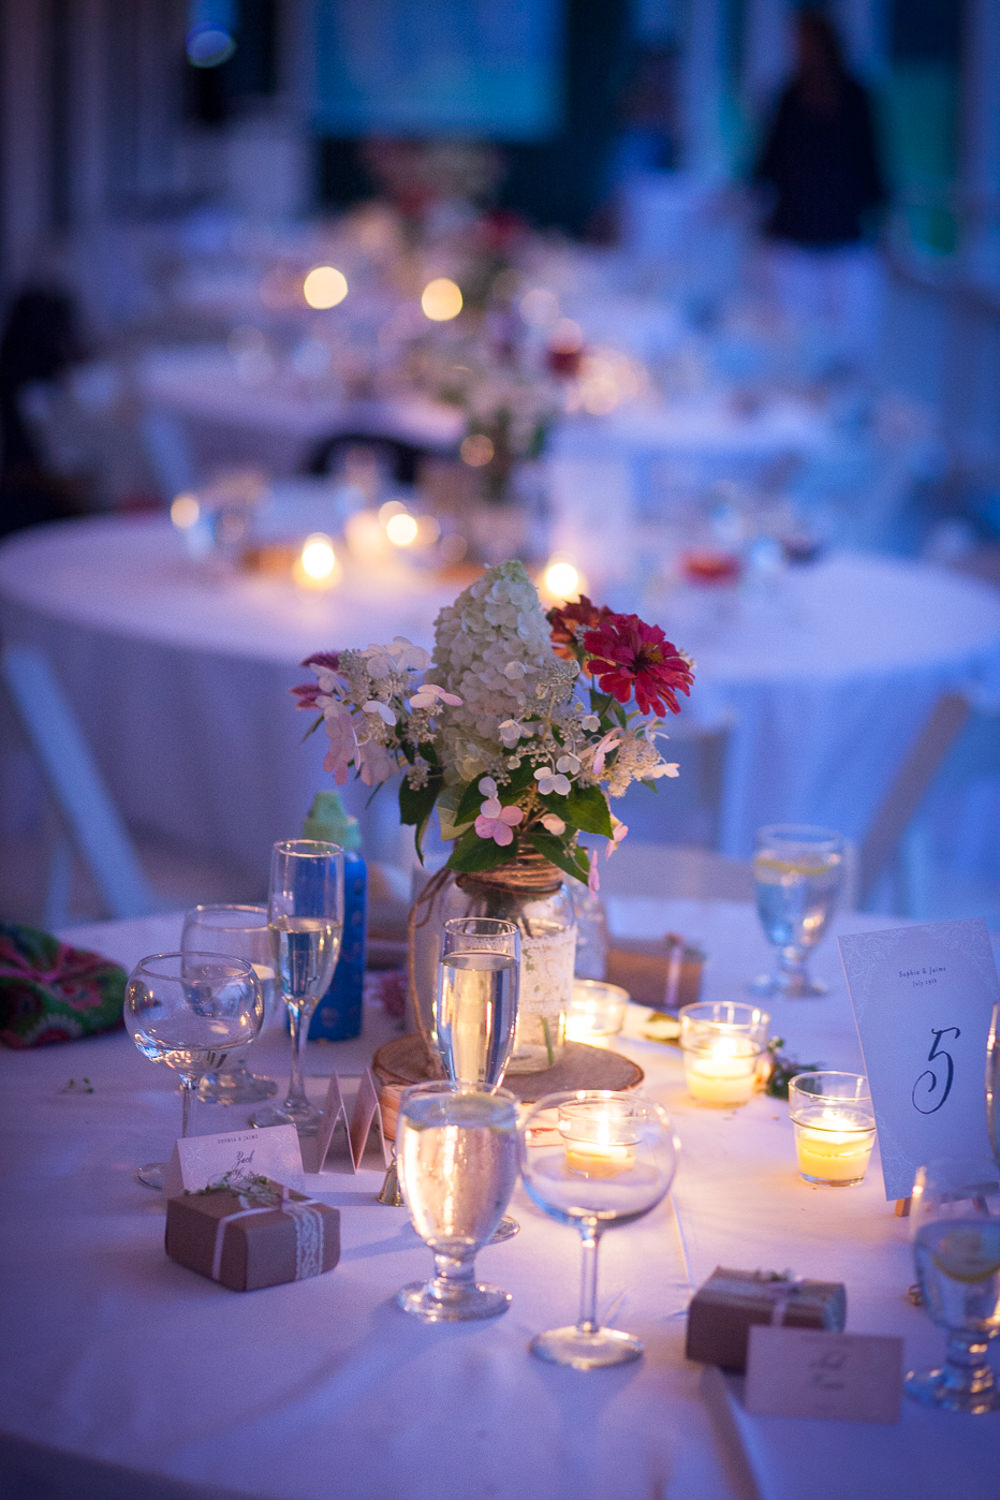 Tea lights illuminate a wedding tablescape at dusk at the Grand Isle Lake House in Vermont by food photographer Stina Booth